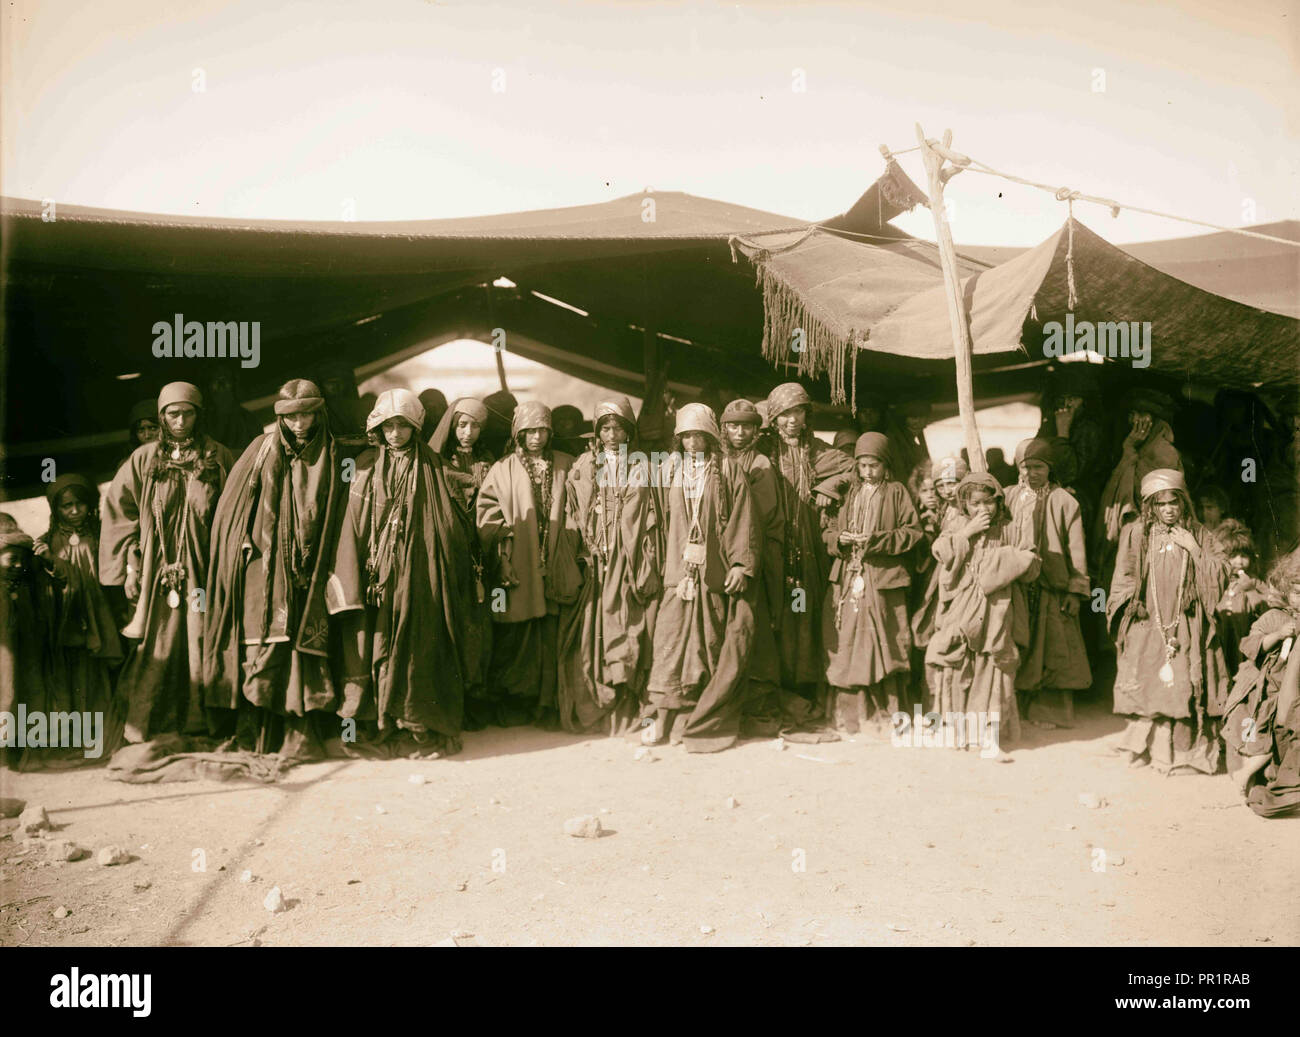 Group of young Bedouin women tent-dwellers in Moab of the Adwan tribe. 1898, Jordan - Stock Image